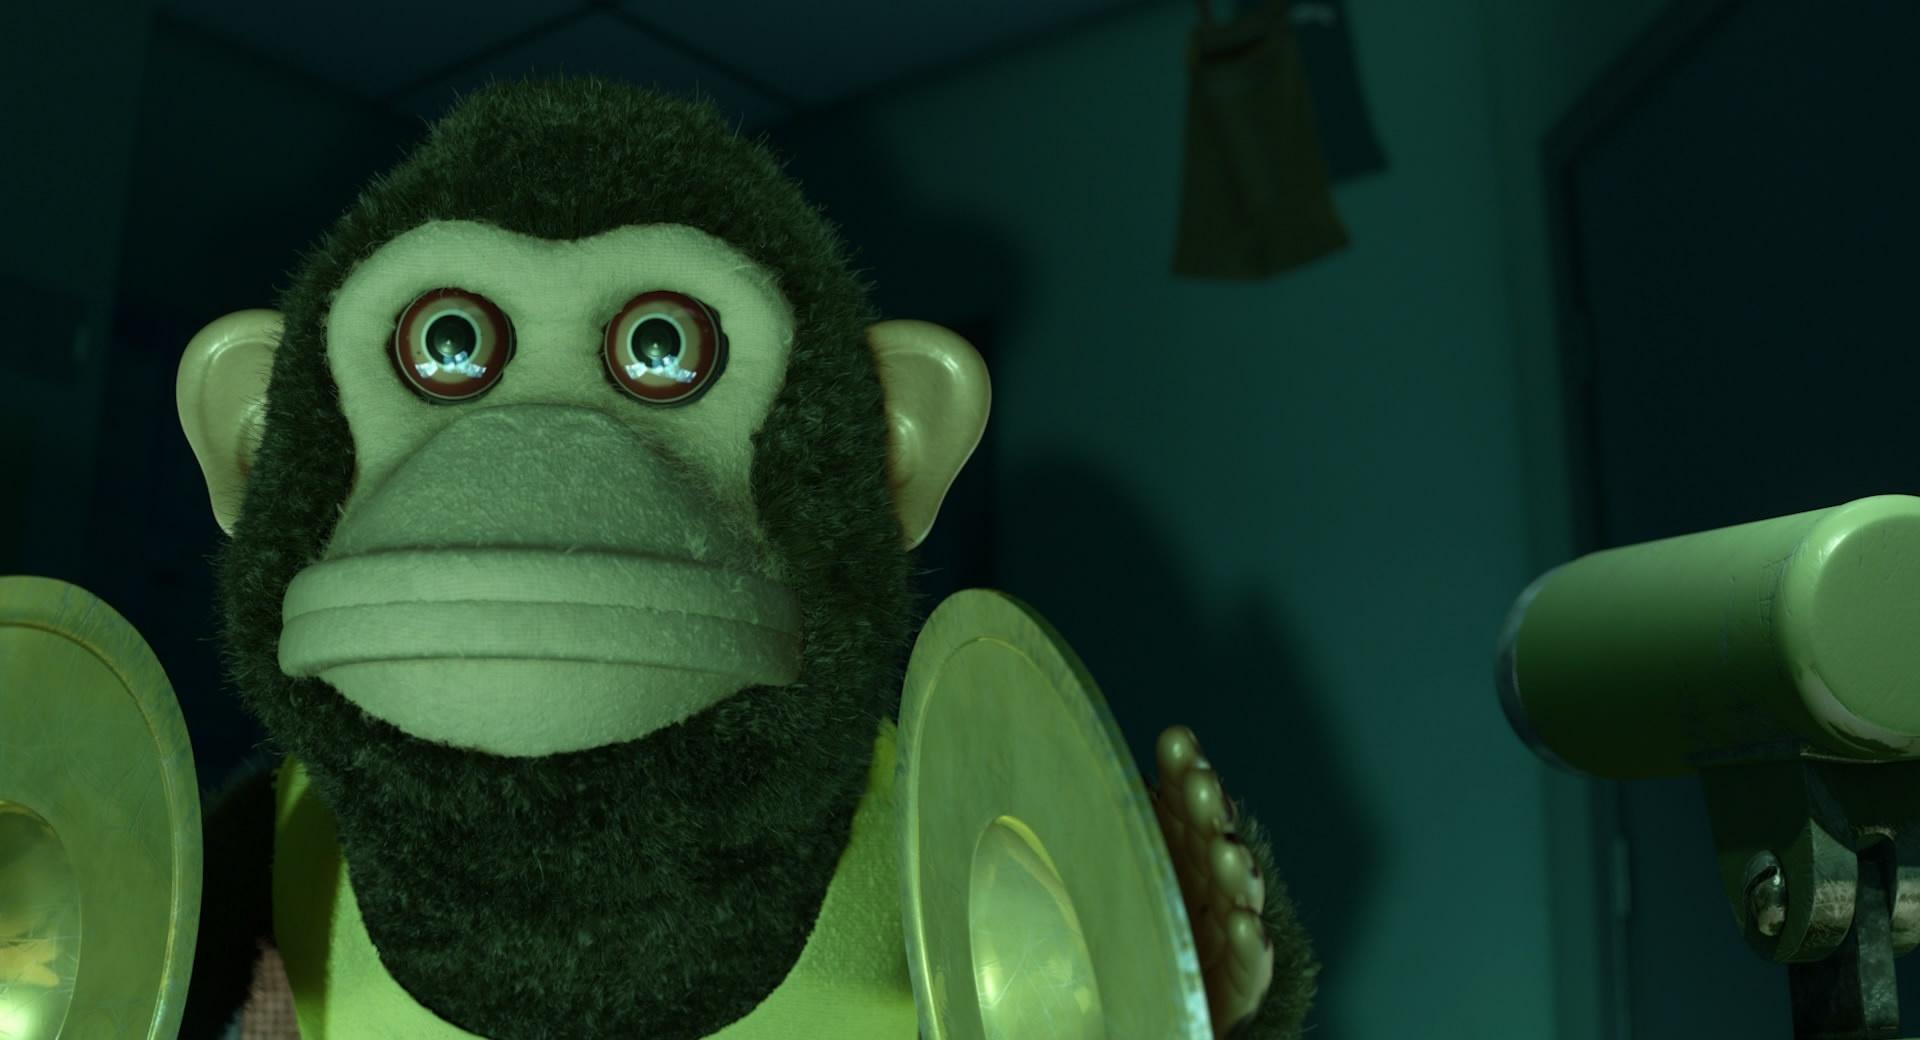 Toy Story 3 Monkey Scary at 320 x 480 iPhone size wallpapers HD quality